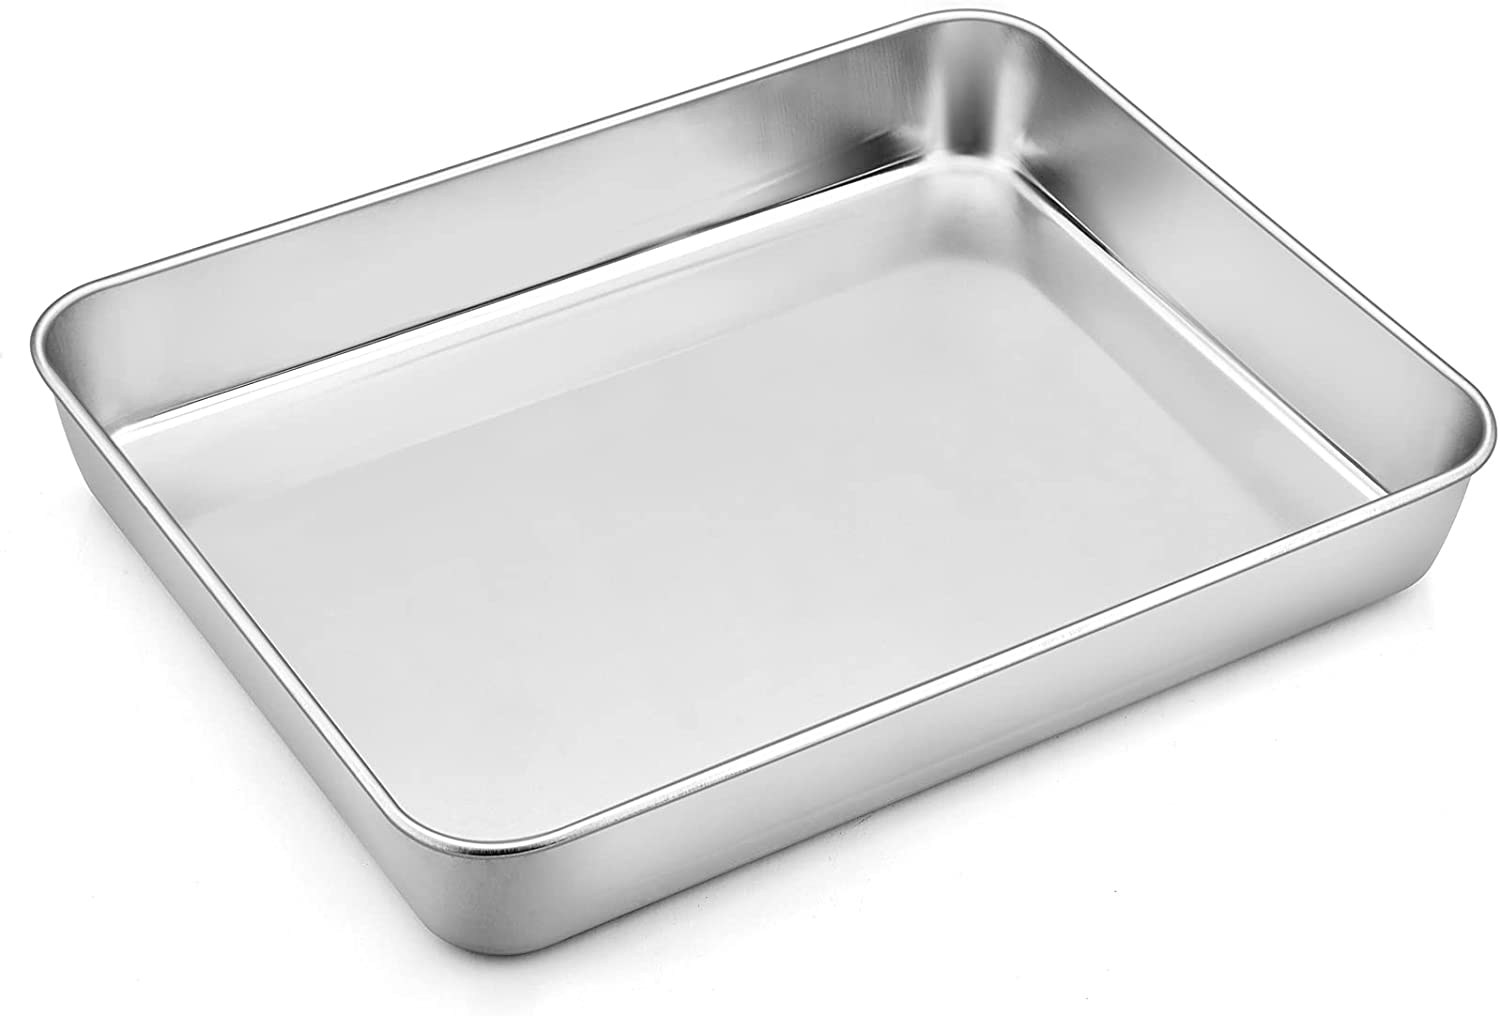 """Small Stainless Steel Baking Pan, P&P CHEF Toaster Oven Lasagna Pan, Rectangle 10.4""""x8""""x1.85"""", Heavy Duty & Dishwasher Safe"""